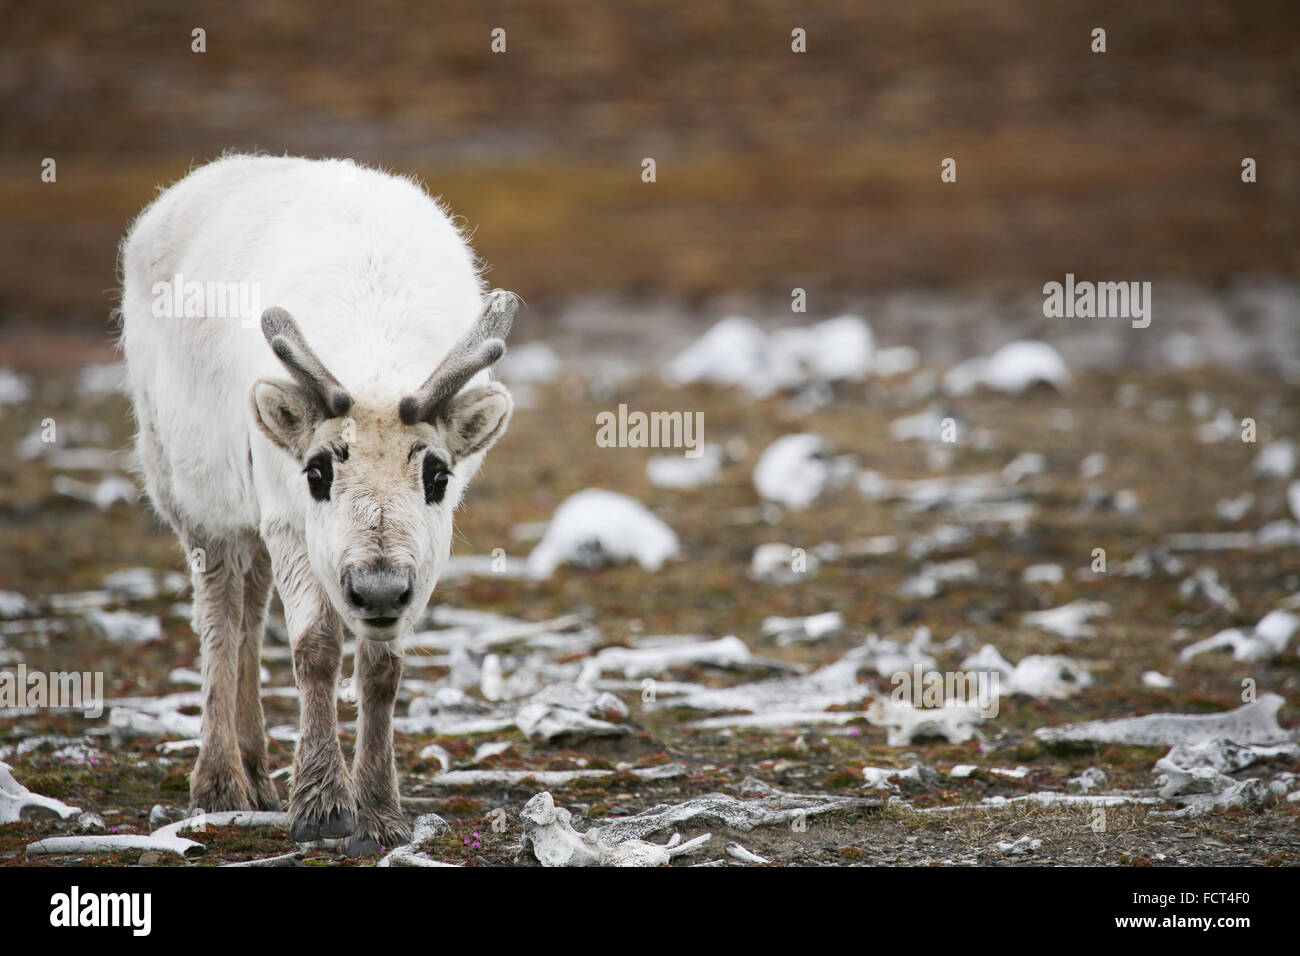 Svalbard, Edgeoya, Kapp Lee. Svalbard reindeer walking on the tundra of old walrus bones, near old trappers huts. - Stock Image